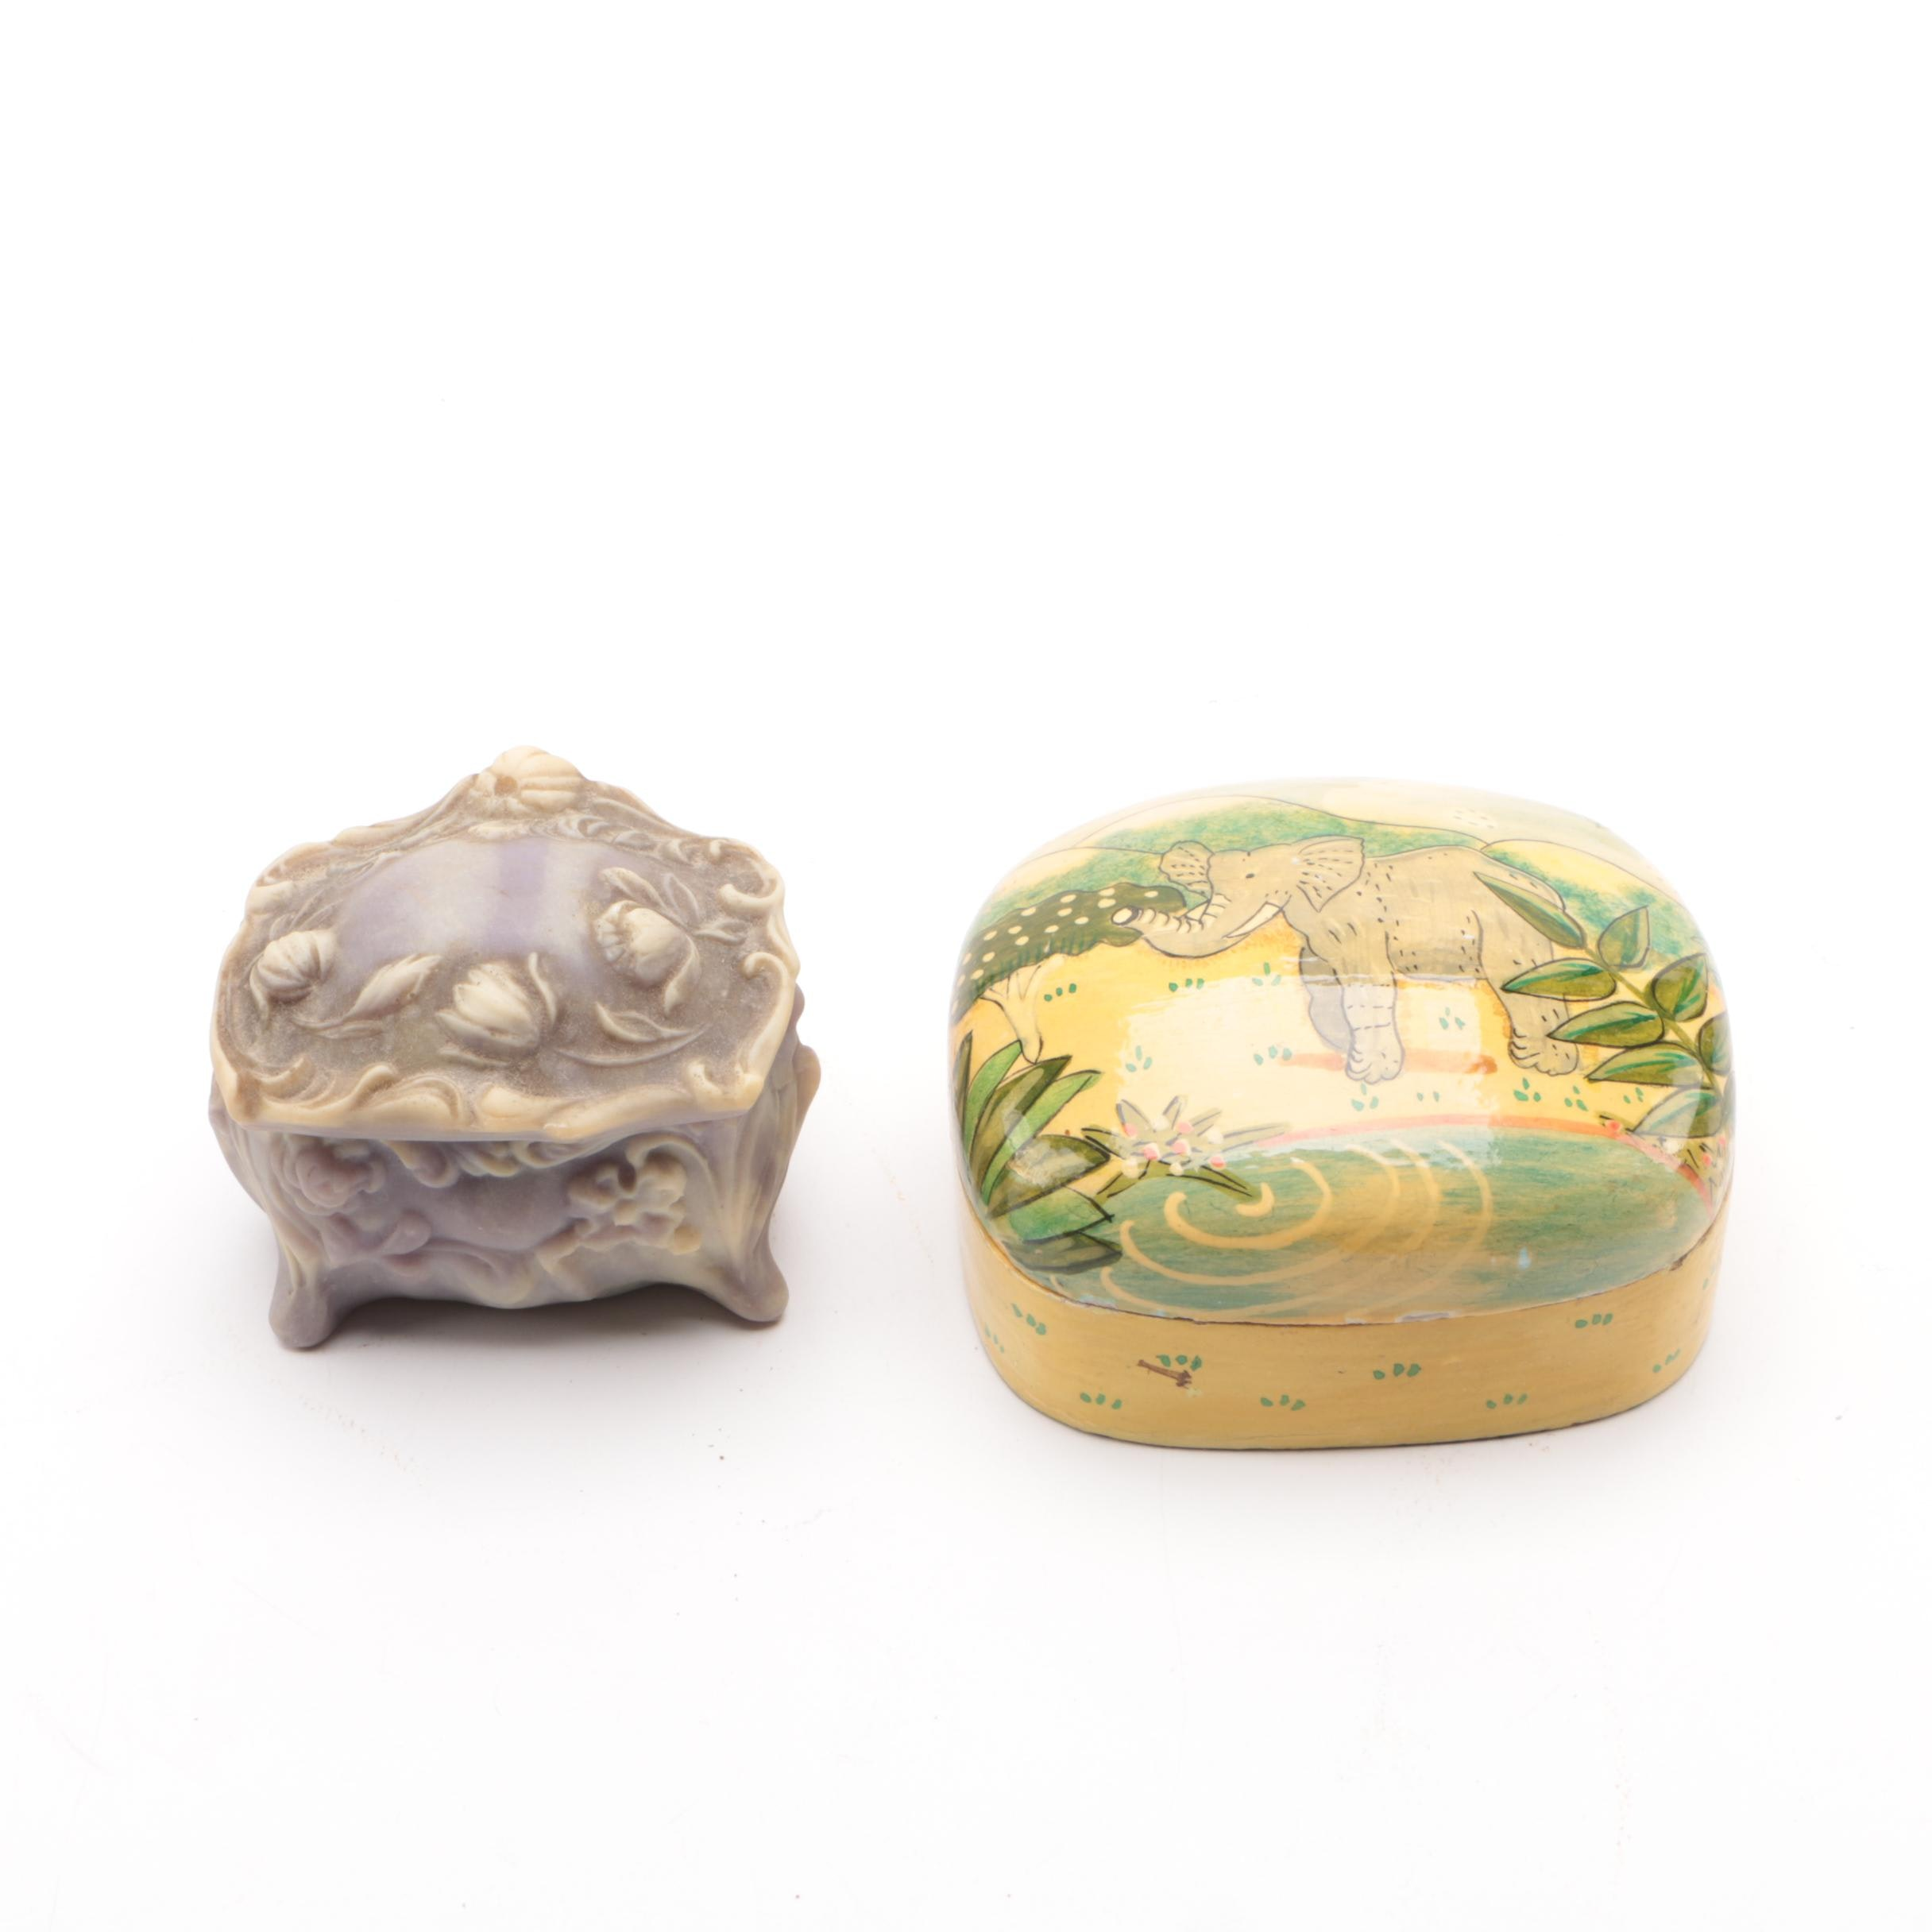 Decorative Trinket Boxes Including Incolay Stone